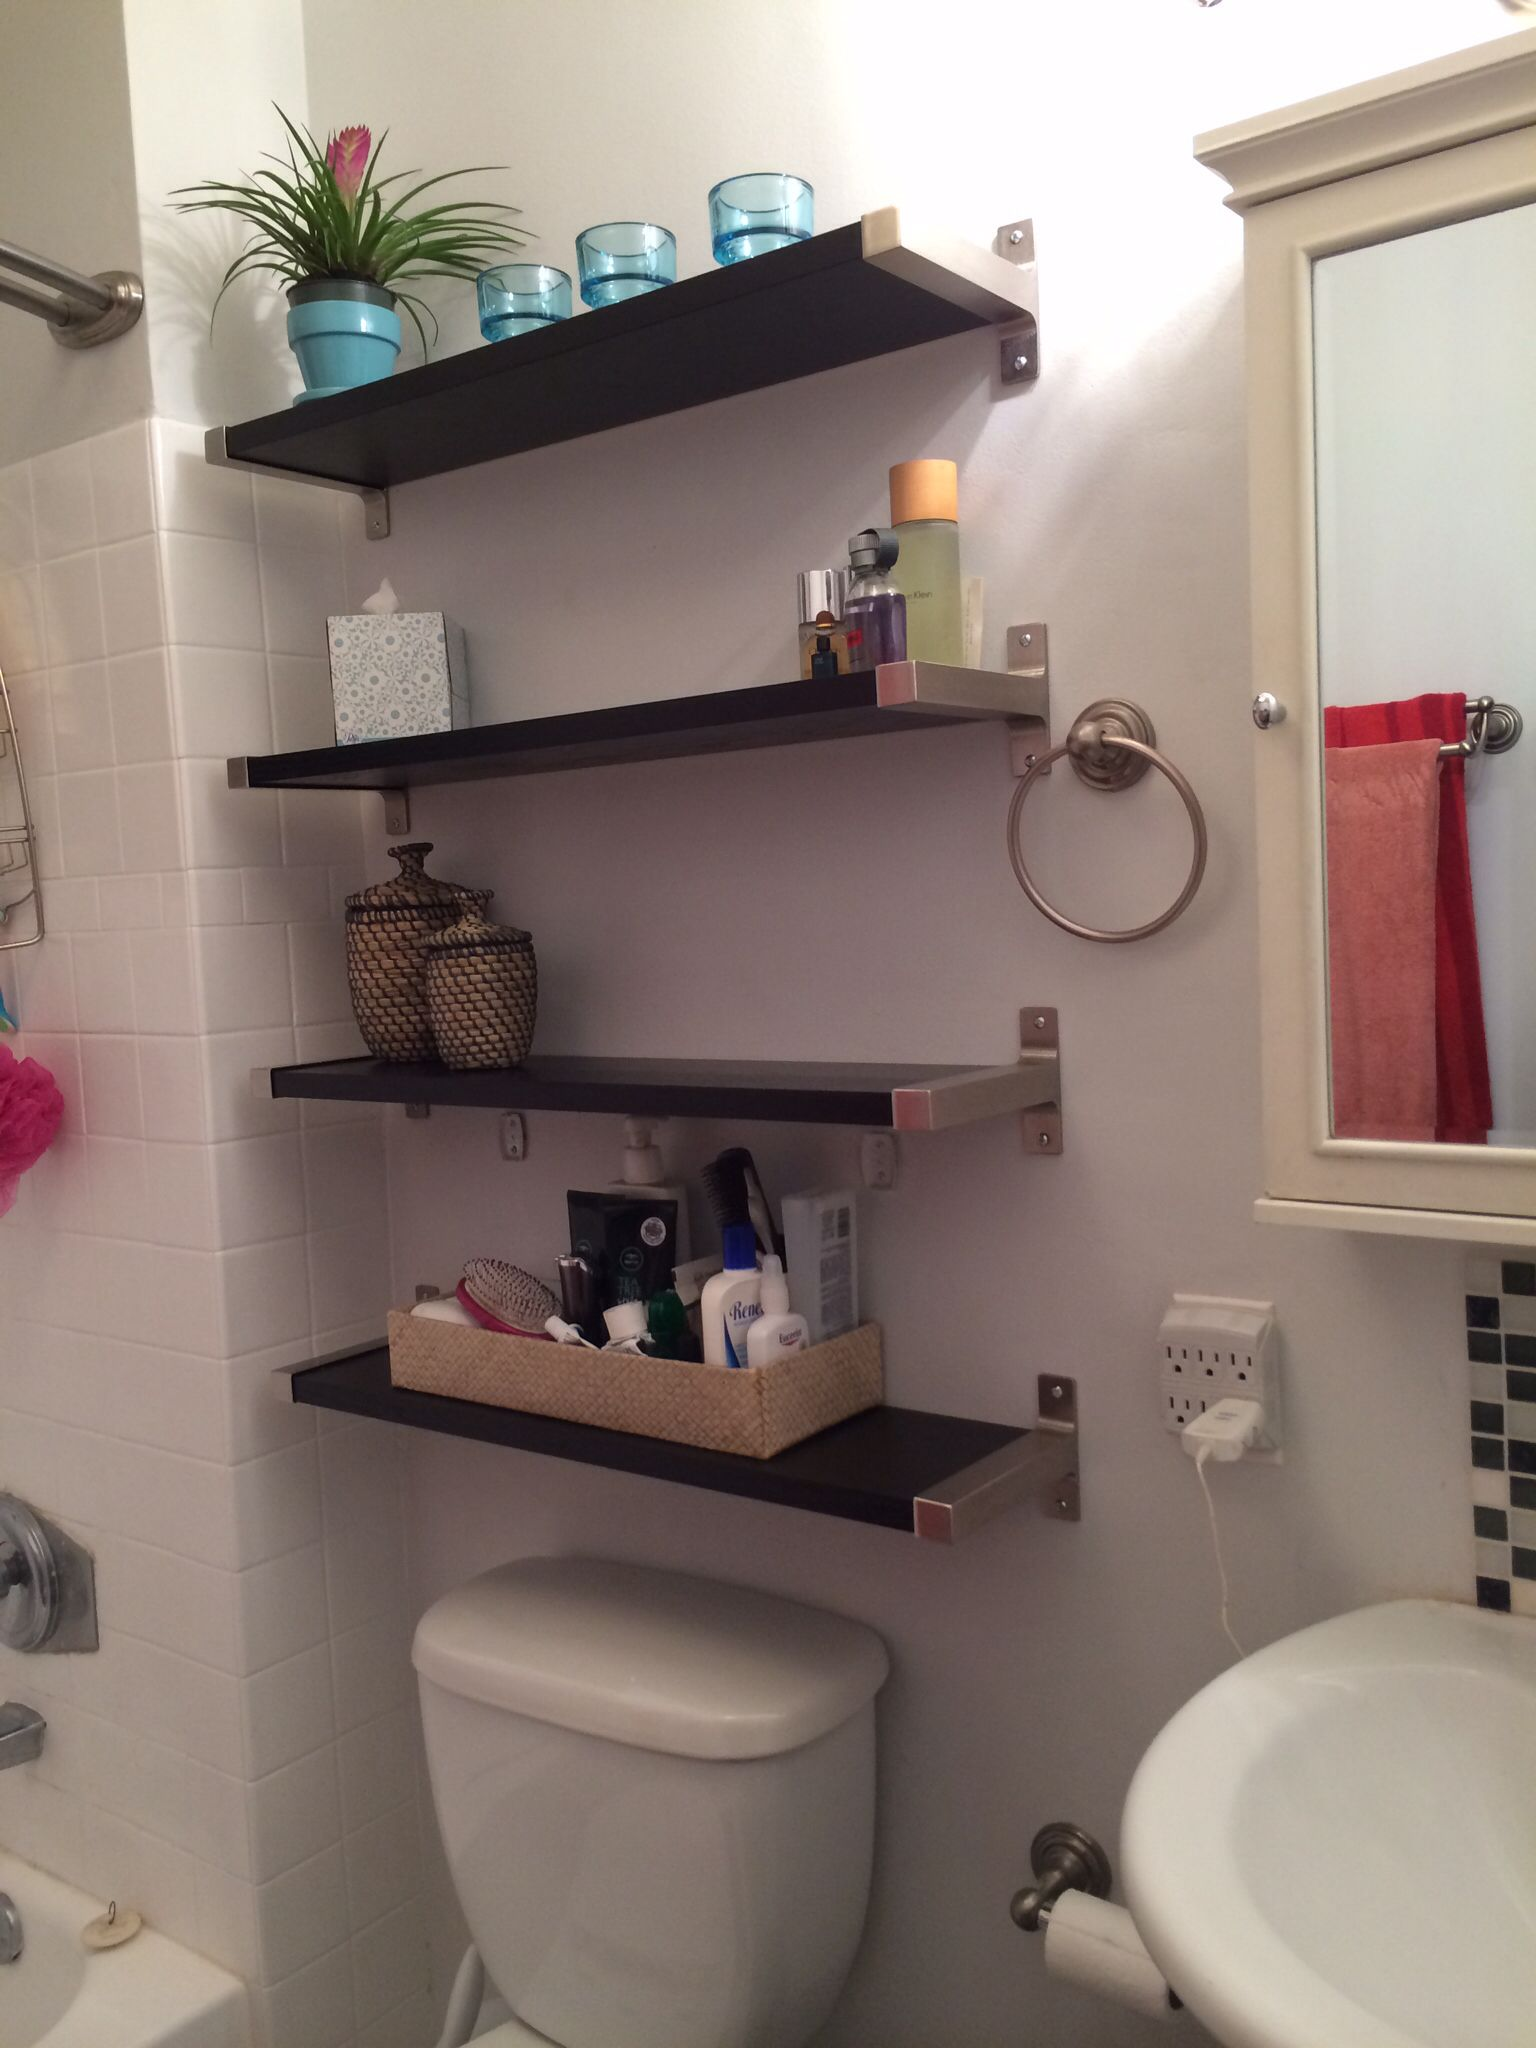 Small Bathroom Solutions Ikea Shelves Bathroom Pinterest - Bathroom sink shelf ideas for small bathroom ideas